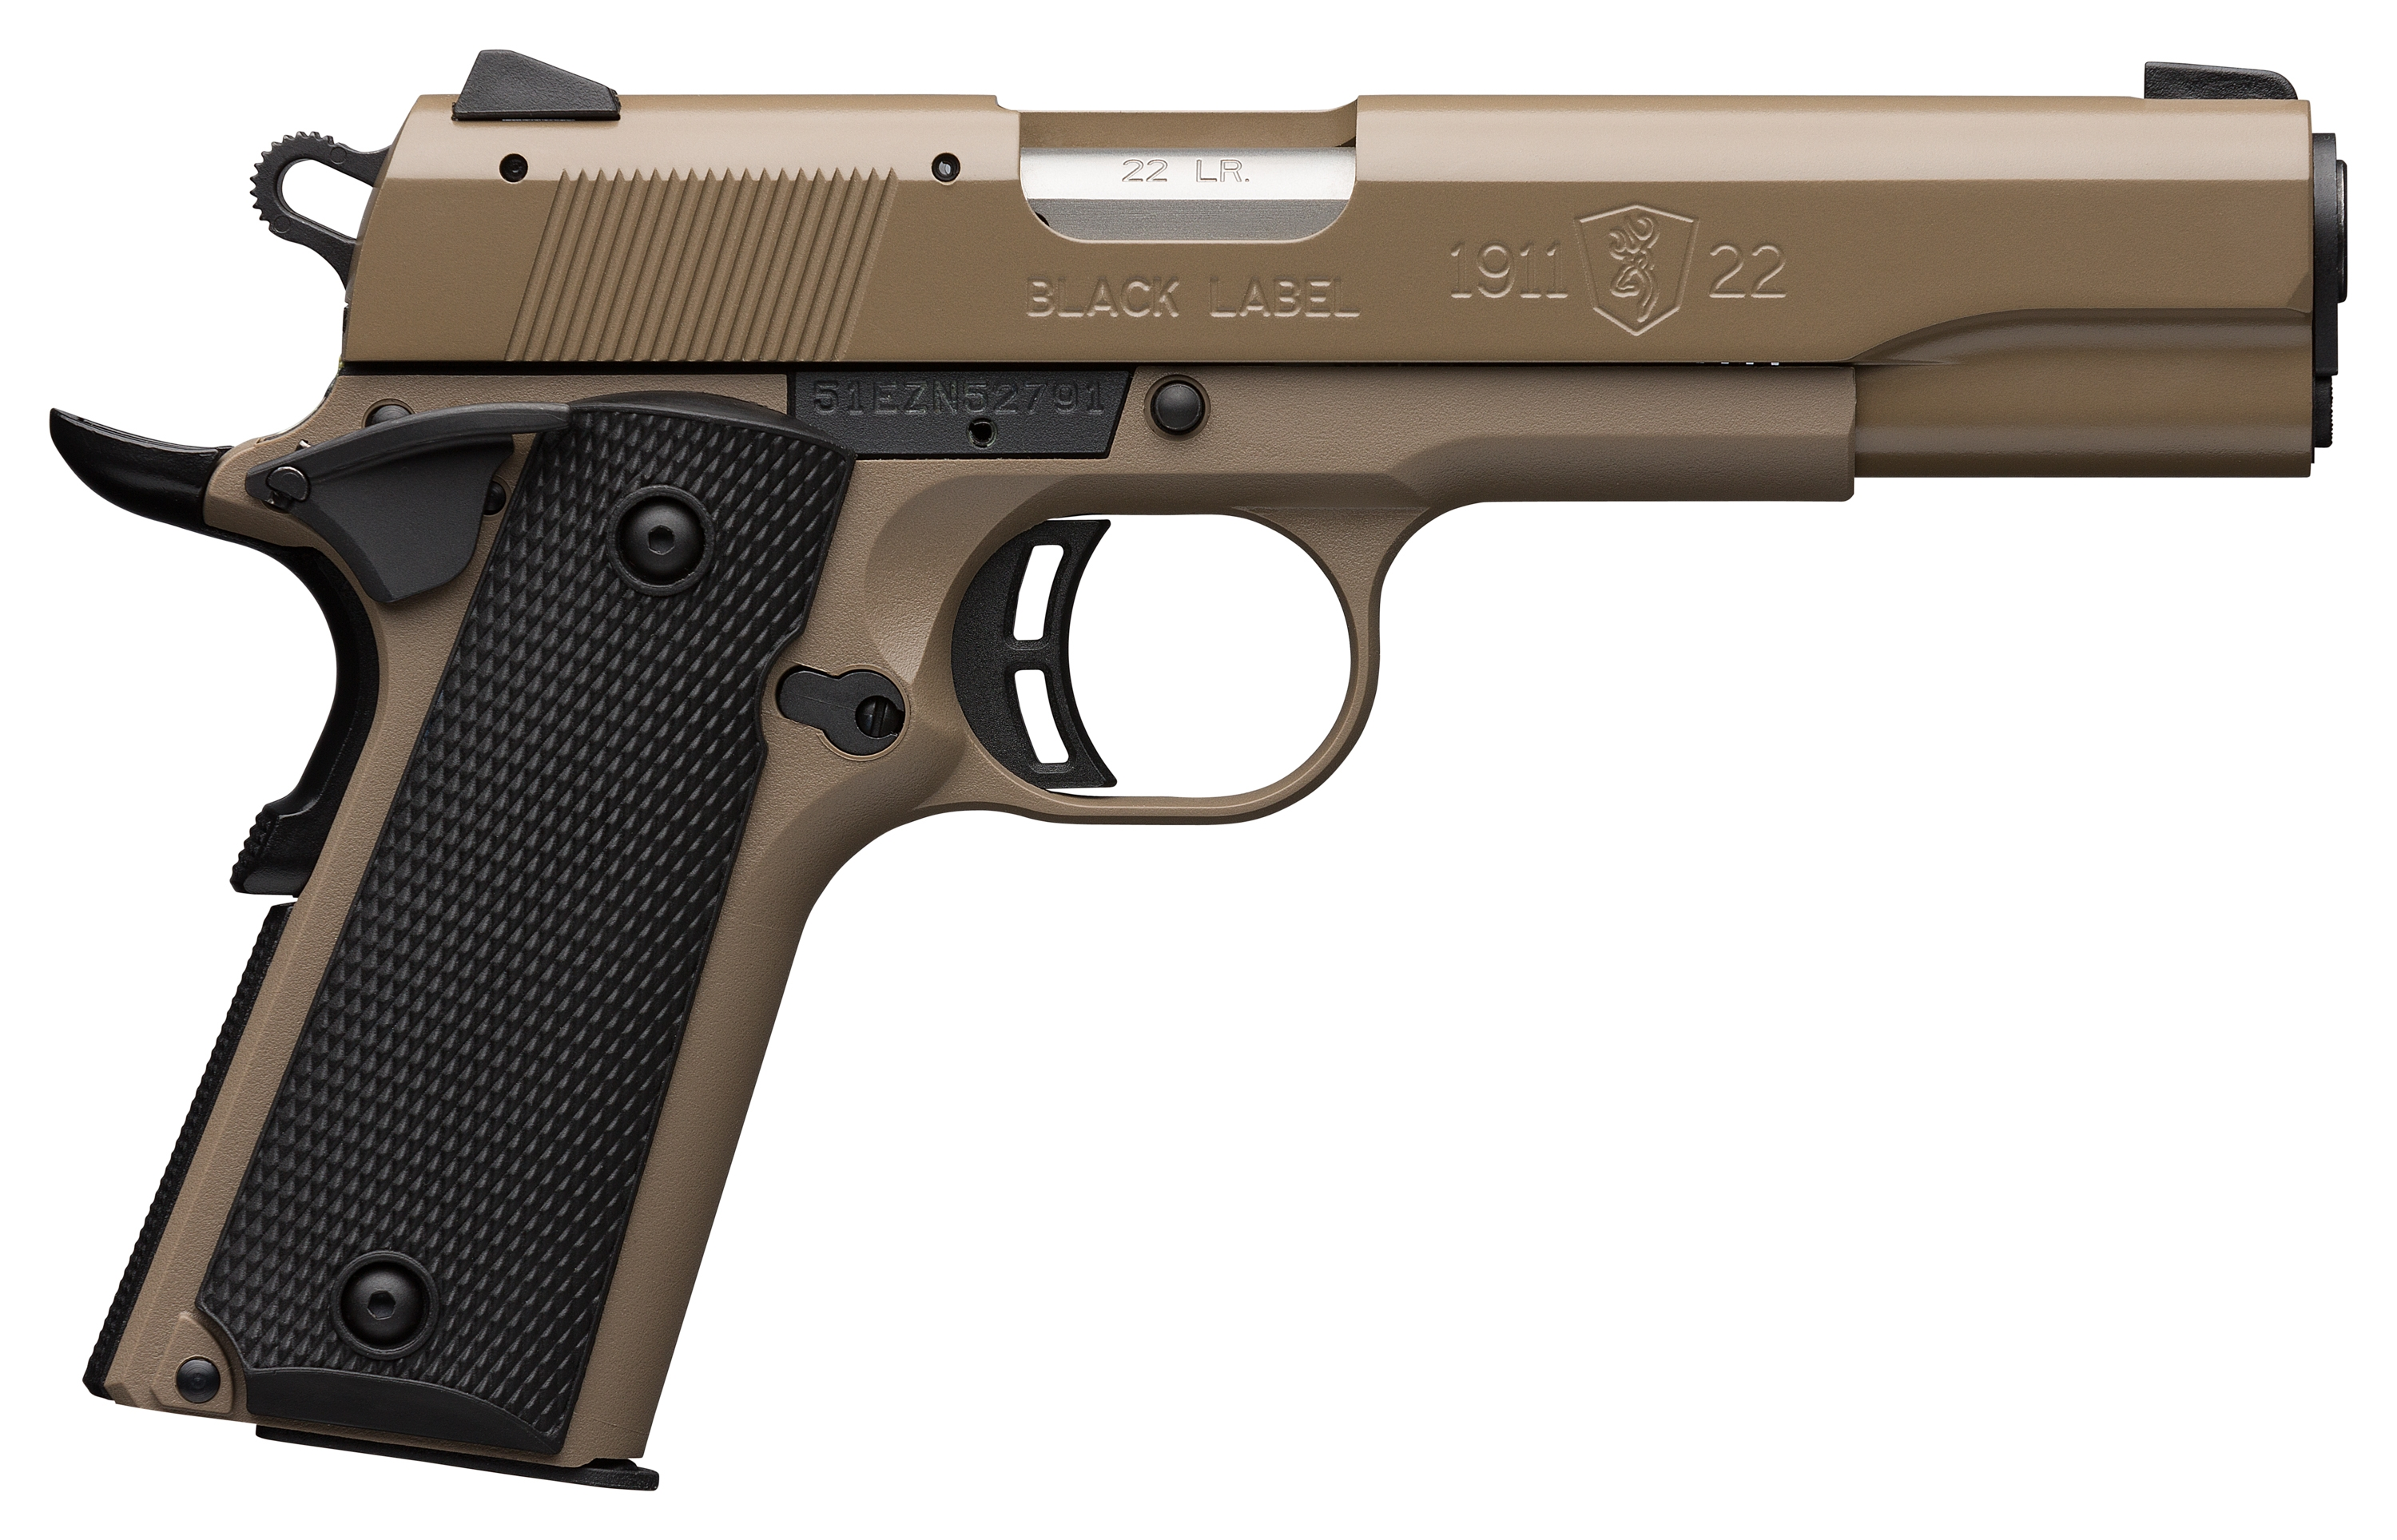 Browning 1911-22 A1 22 LR